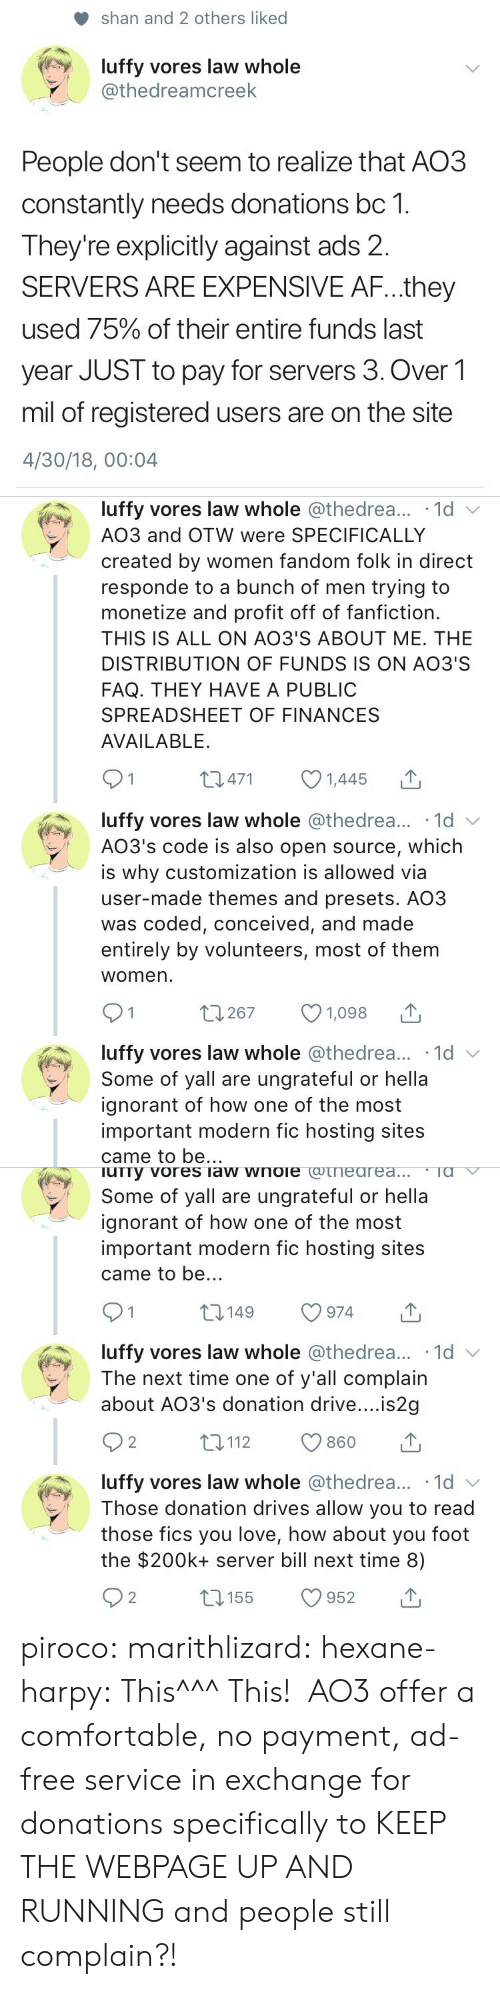 customization: shan and 2 others liked  luffy vores law whole  @thedreamcreek  People don't seem to realize that AO3  constantly needs donations bc 1.  Theyre explicitly against ads 2.  SERVERS ARE EXPENSIVE AF...they  used 75% of their entire funds last  year JUST to pay for servers 3. Over1  mil of registered users are on the site  4/30/18, 00:04   luffy vores law whole @thedrea... 1d v  AO3 and OTW were SPECIFICALLY  created by women fandom folk in direct  responde to a bunch of men trying to  monetize and profit off of fanfiction.  THIS IS ALL ON AO3'S ABOUT ME. THE  DISTRIBUTION OF FUNDS IS ON AO3'S  FAQ. THEY HAVE A PUBLIC  SPREADSHEET OF FINANCES  AVAILABLE.  01 0471 1445  luffy vores law whole @thedrea... 1d  AO3's code is also open source, which  is why customization is allowed via  user-made themes and presets. AO3  was coded, conceived, and made  entirely by volunteers, most of them  womern  luffy vores law whole @thedrea... 1d  Some of yall are ungrateful or hella  ignorant of how one of the most  important modern fic hosting sites  came to be..   urry vores law wnoie cotneareaTa  Some of yall are ungrateful or hella  ignorant of how one of the most  important modern fic hosting sites  came to be..  t0149 974  luffy vores law whole @thedrea... 1d v  The next time one of y'all complain  about AO3's donation drive....is2g  92 t112 860 T  luffy vores law whole @thedrea... 1d  Those donation drives allow you to read  those fics you love, how about you foot  the $200k+ server bill next time 8) piroco: marithlizard:  hexane-harpy: This^^^ This!  AO3 offer a comfortable, no payment, ad-free service in exchange for donations specifically to KEEP THE WEBPAGE UP AND RUNNING and people still complain?!